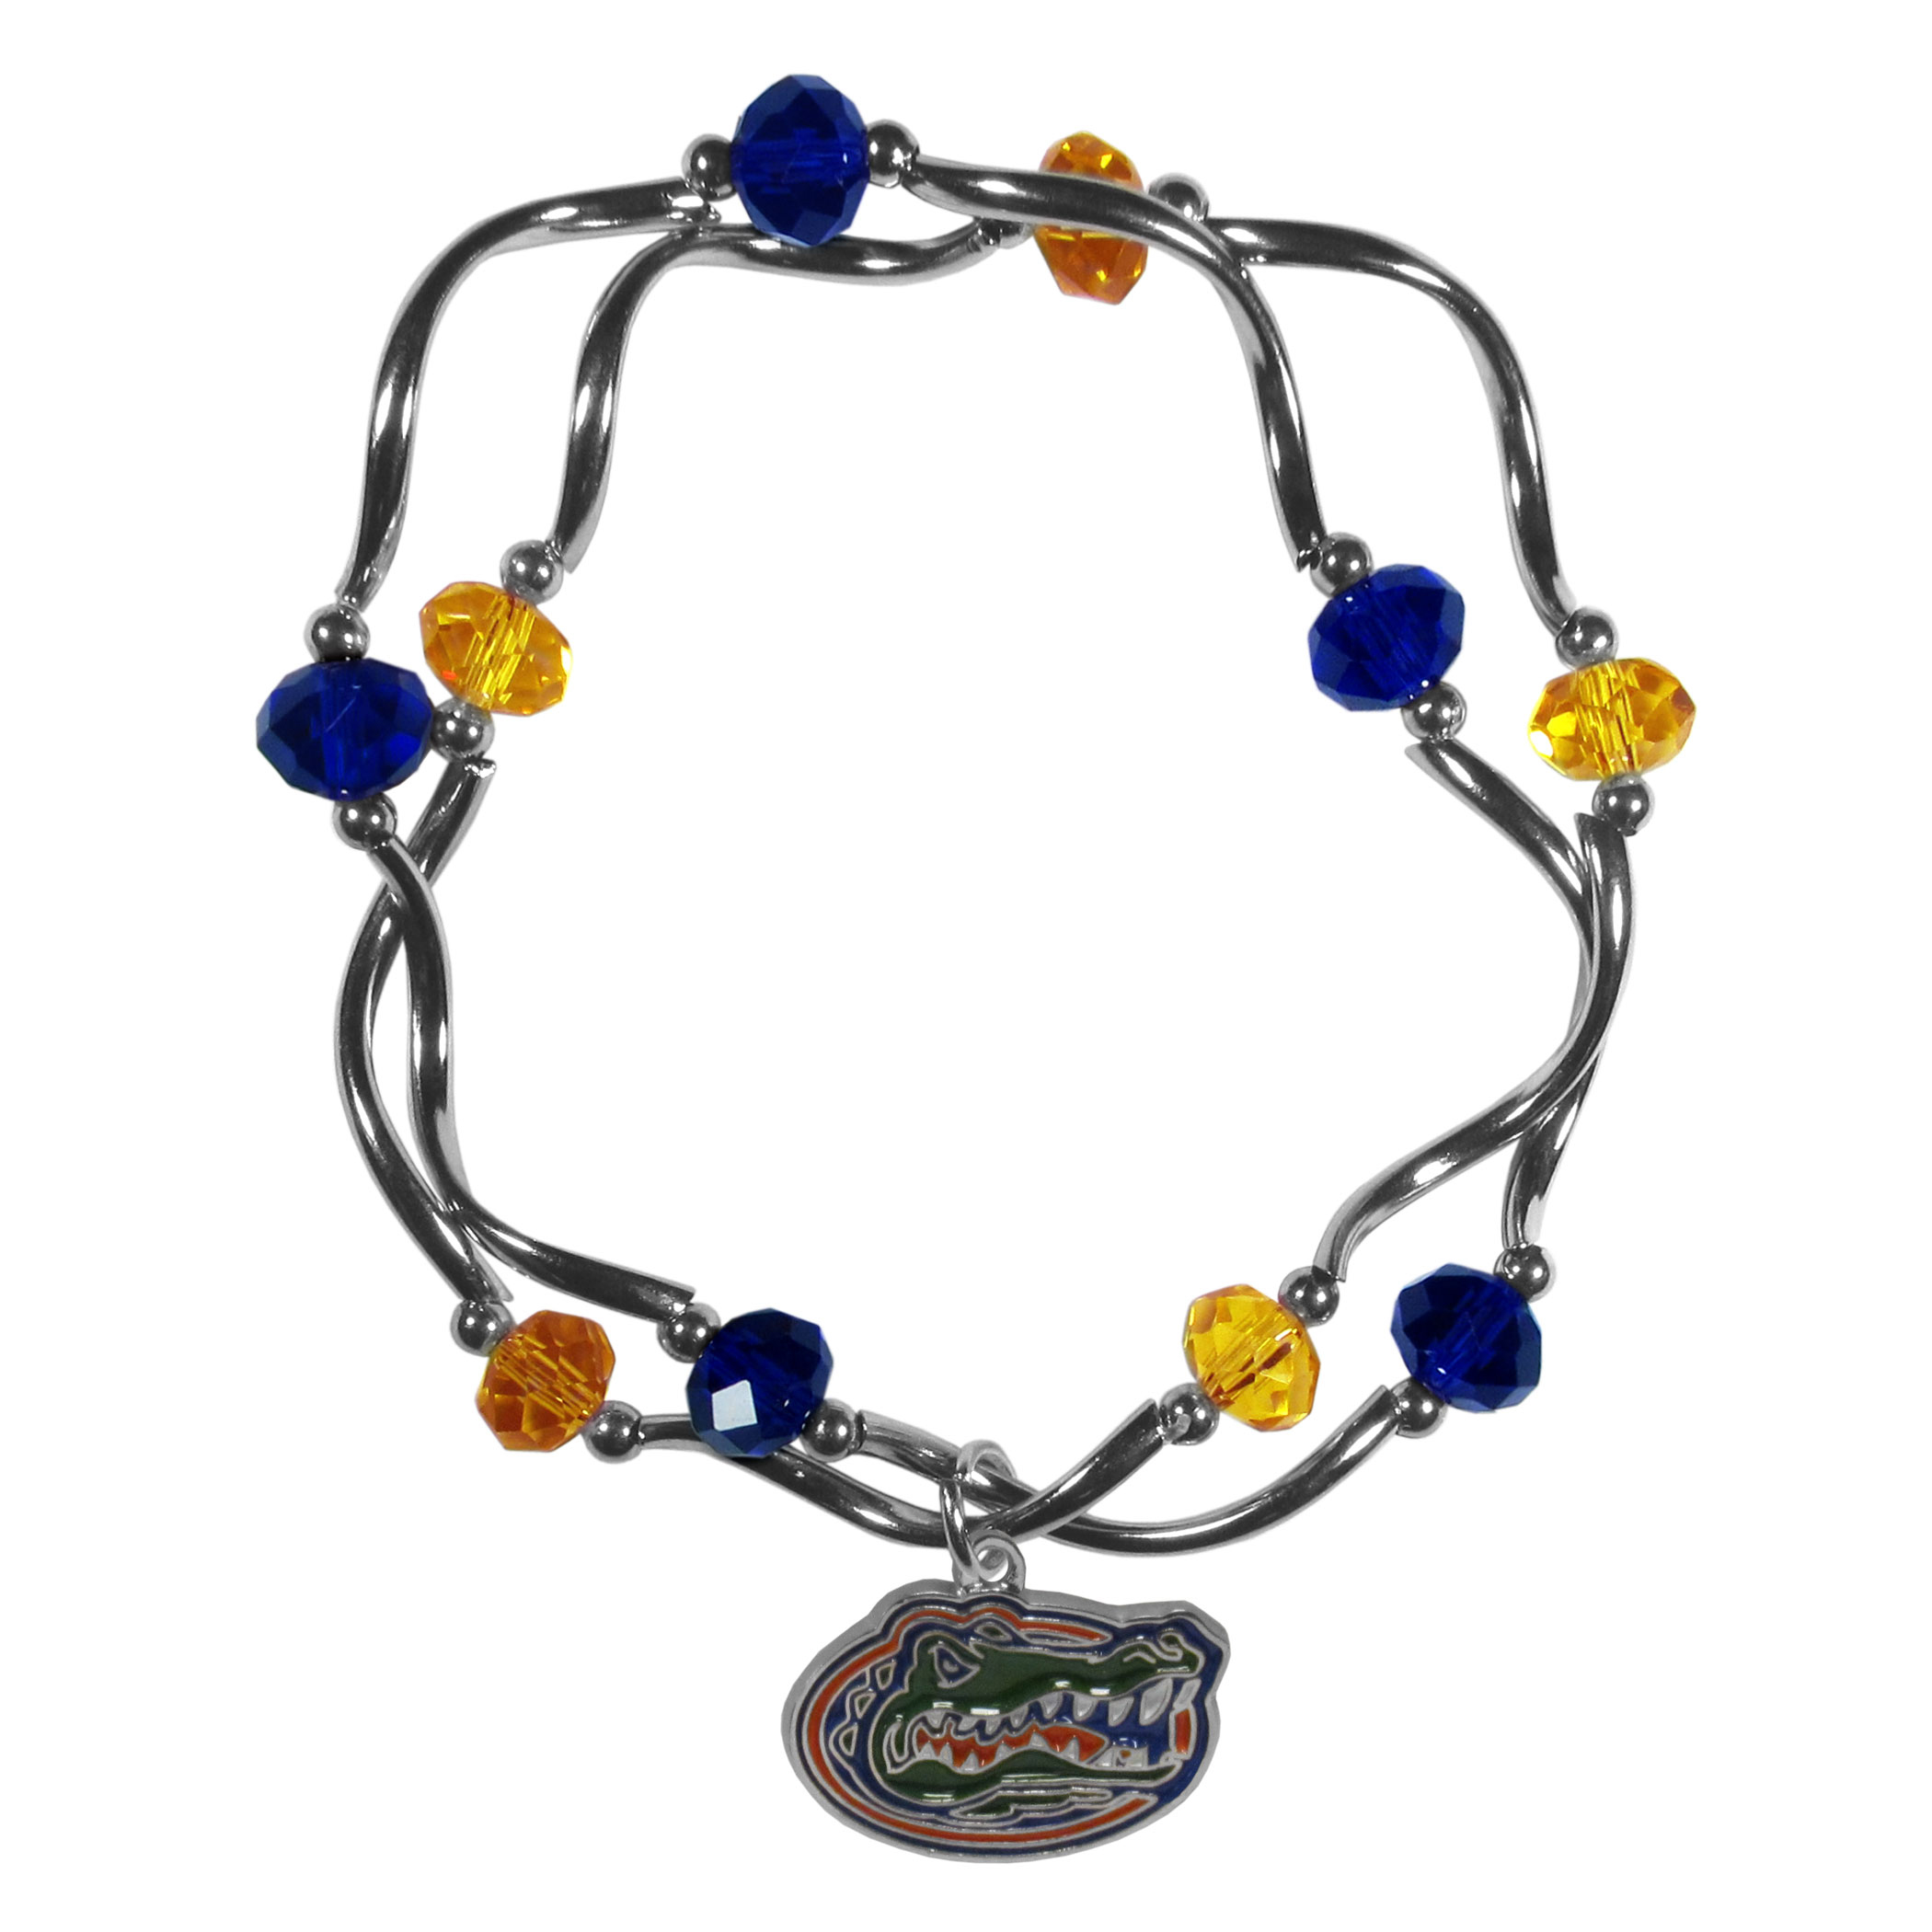 Florida Gators Crystal Bead Bracelet - This delicate bead bracelet has eye-catching team colored beads that are strung on 2 stretch cords that provide a comfortable and easy fit. The crystals are separated by beautiful helix beads in high polish chrome for a truly designer inspired look. The 2 strands of beads intertwine for a fun and stylish bracelet. This chic accessory is finished off with a Florida Gators team charm that has expertly carved detail and an enameled color finish. A contemporary look to thrill any female sports fan. Whether this a gift for yourself or someone special you cannot miss with this trend-setting fashion bracelet.